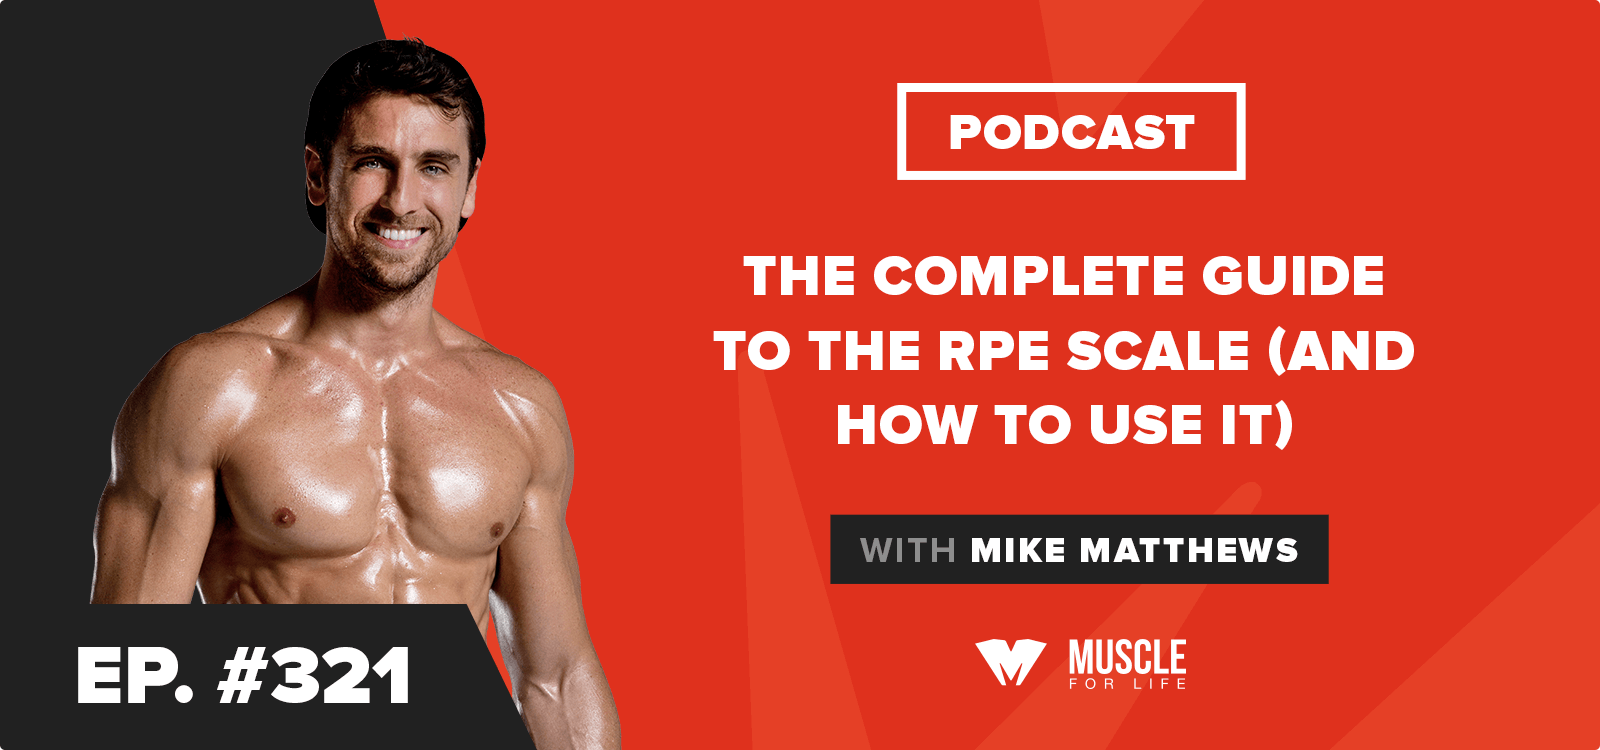 The Complete Guide to the RPE Scale (and How to Use It)